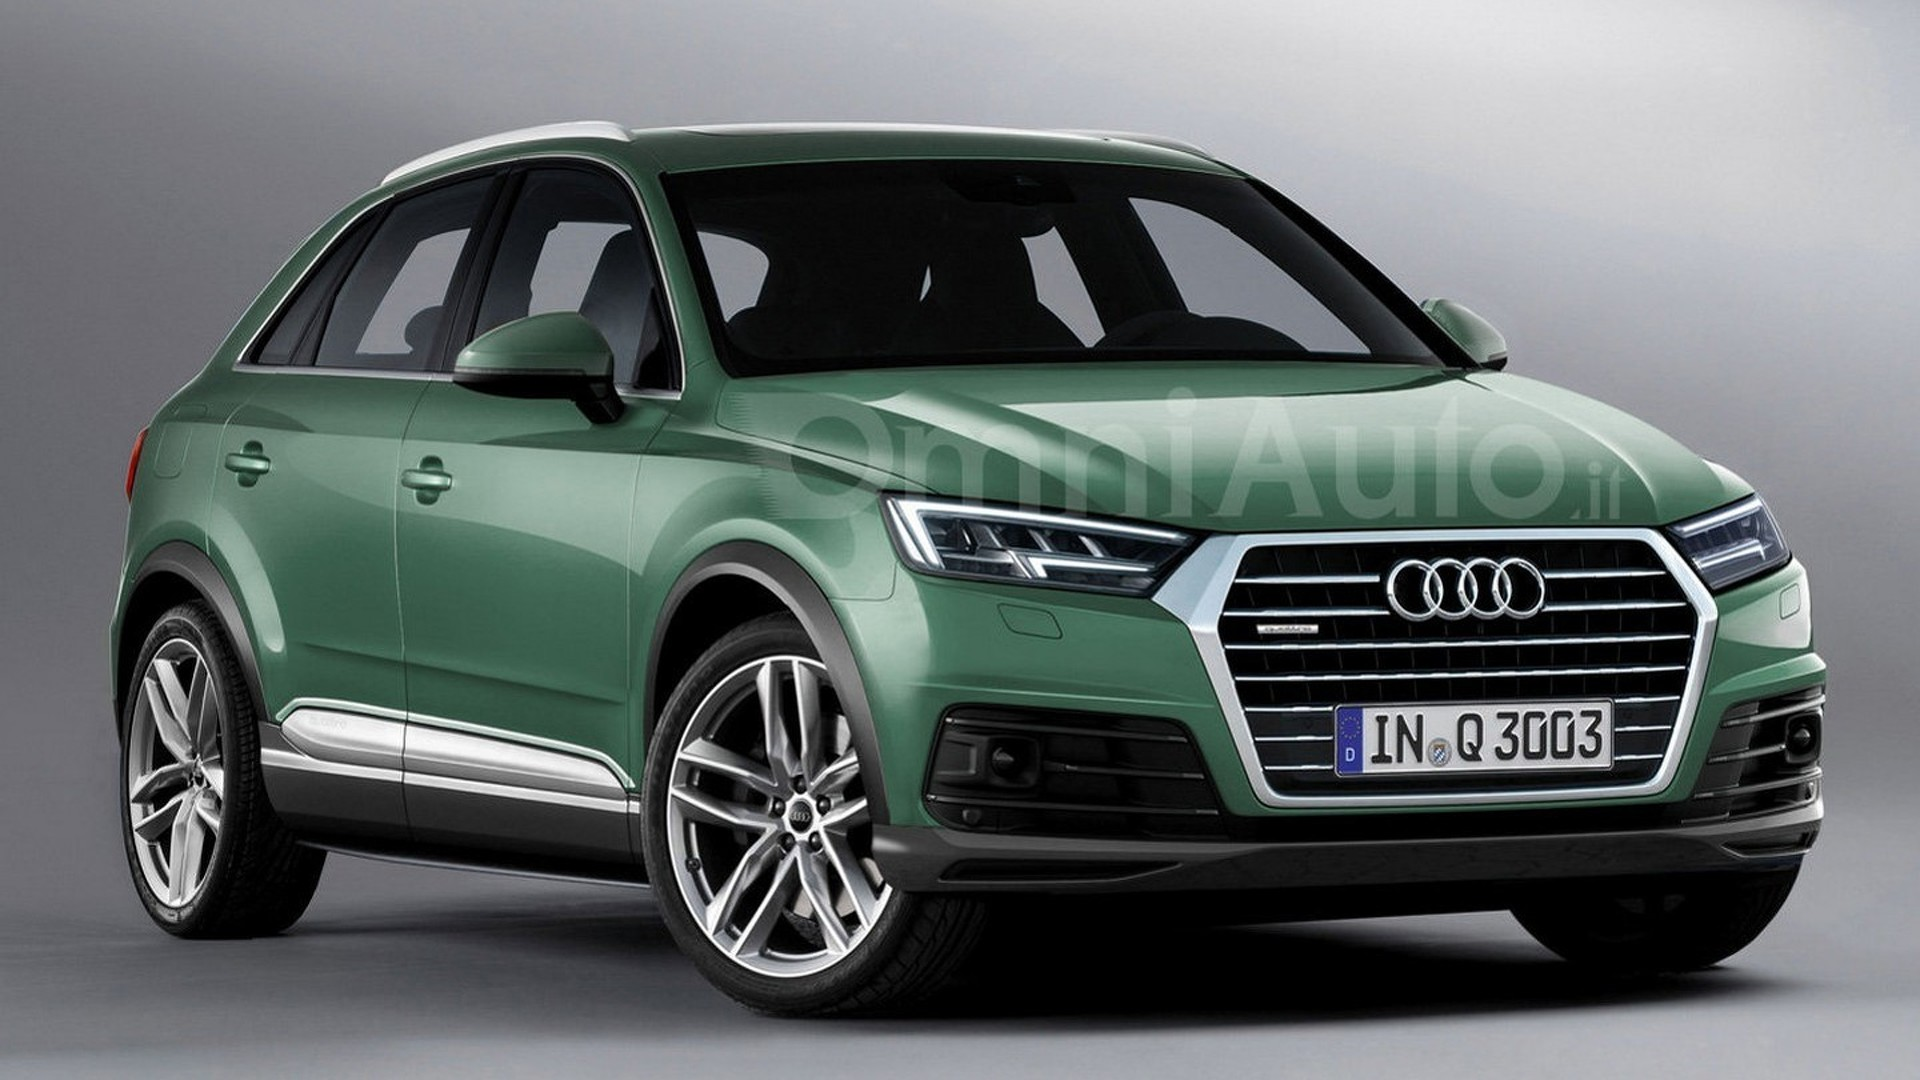 Audi Q3 Next Generation >> 2018 Audi Q3 render points towards predictable design evolution